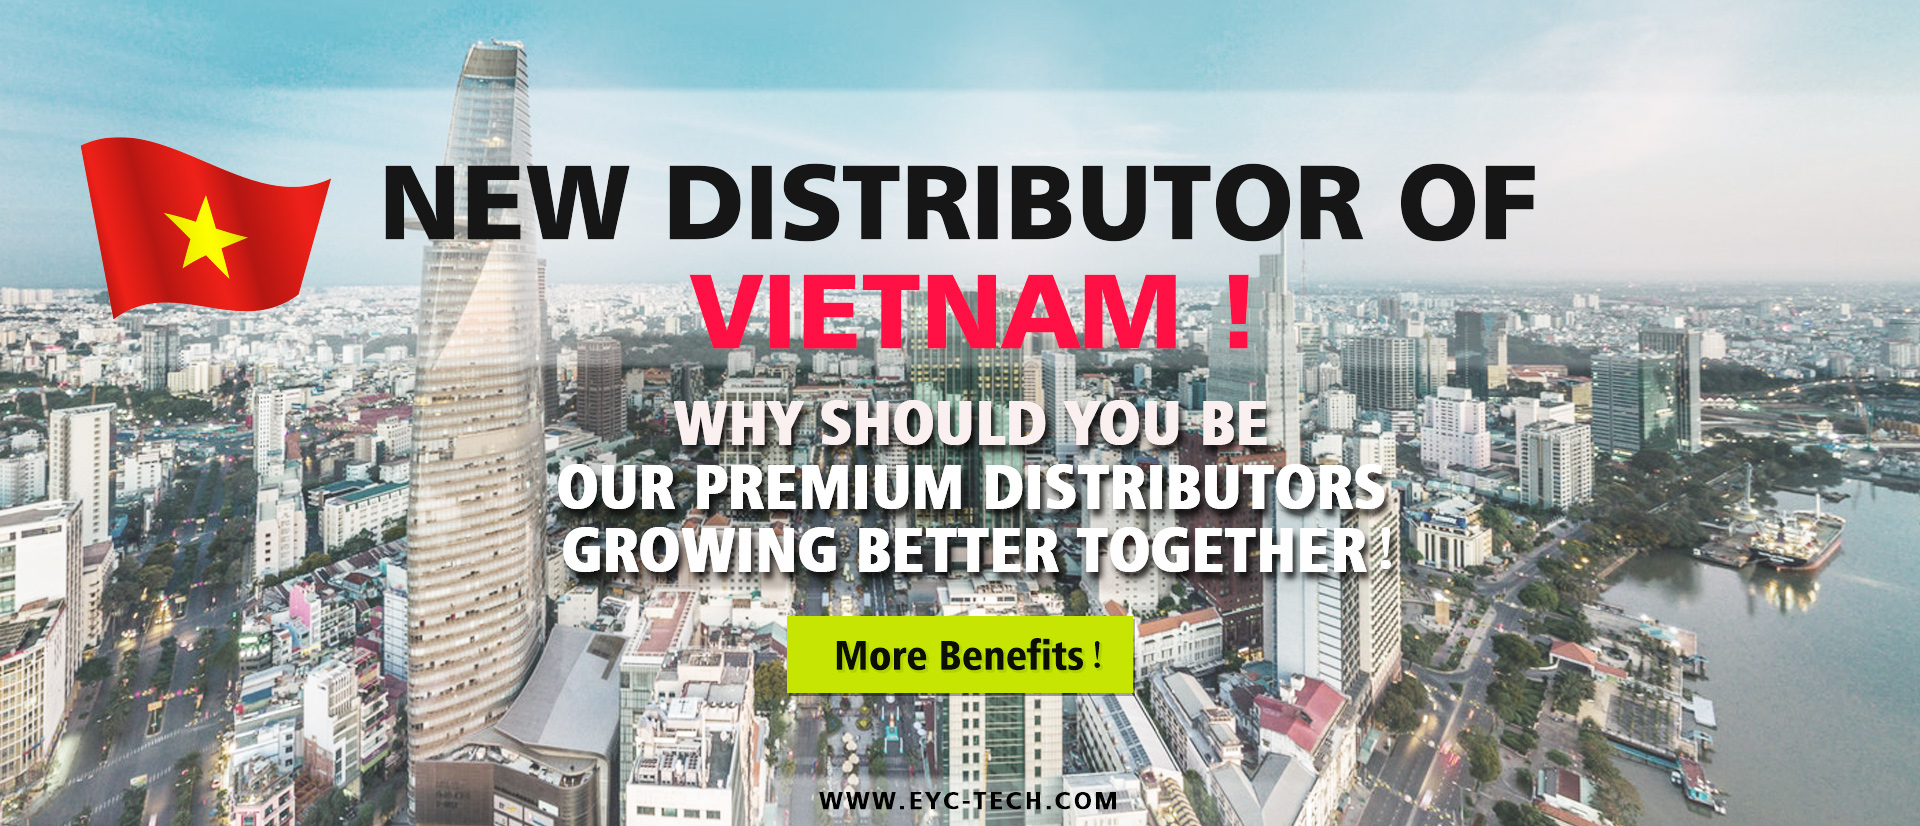 New Premium Distributor of Vietnam